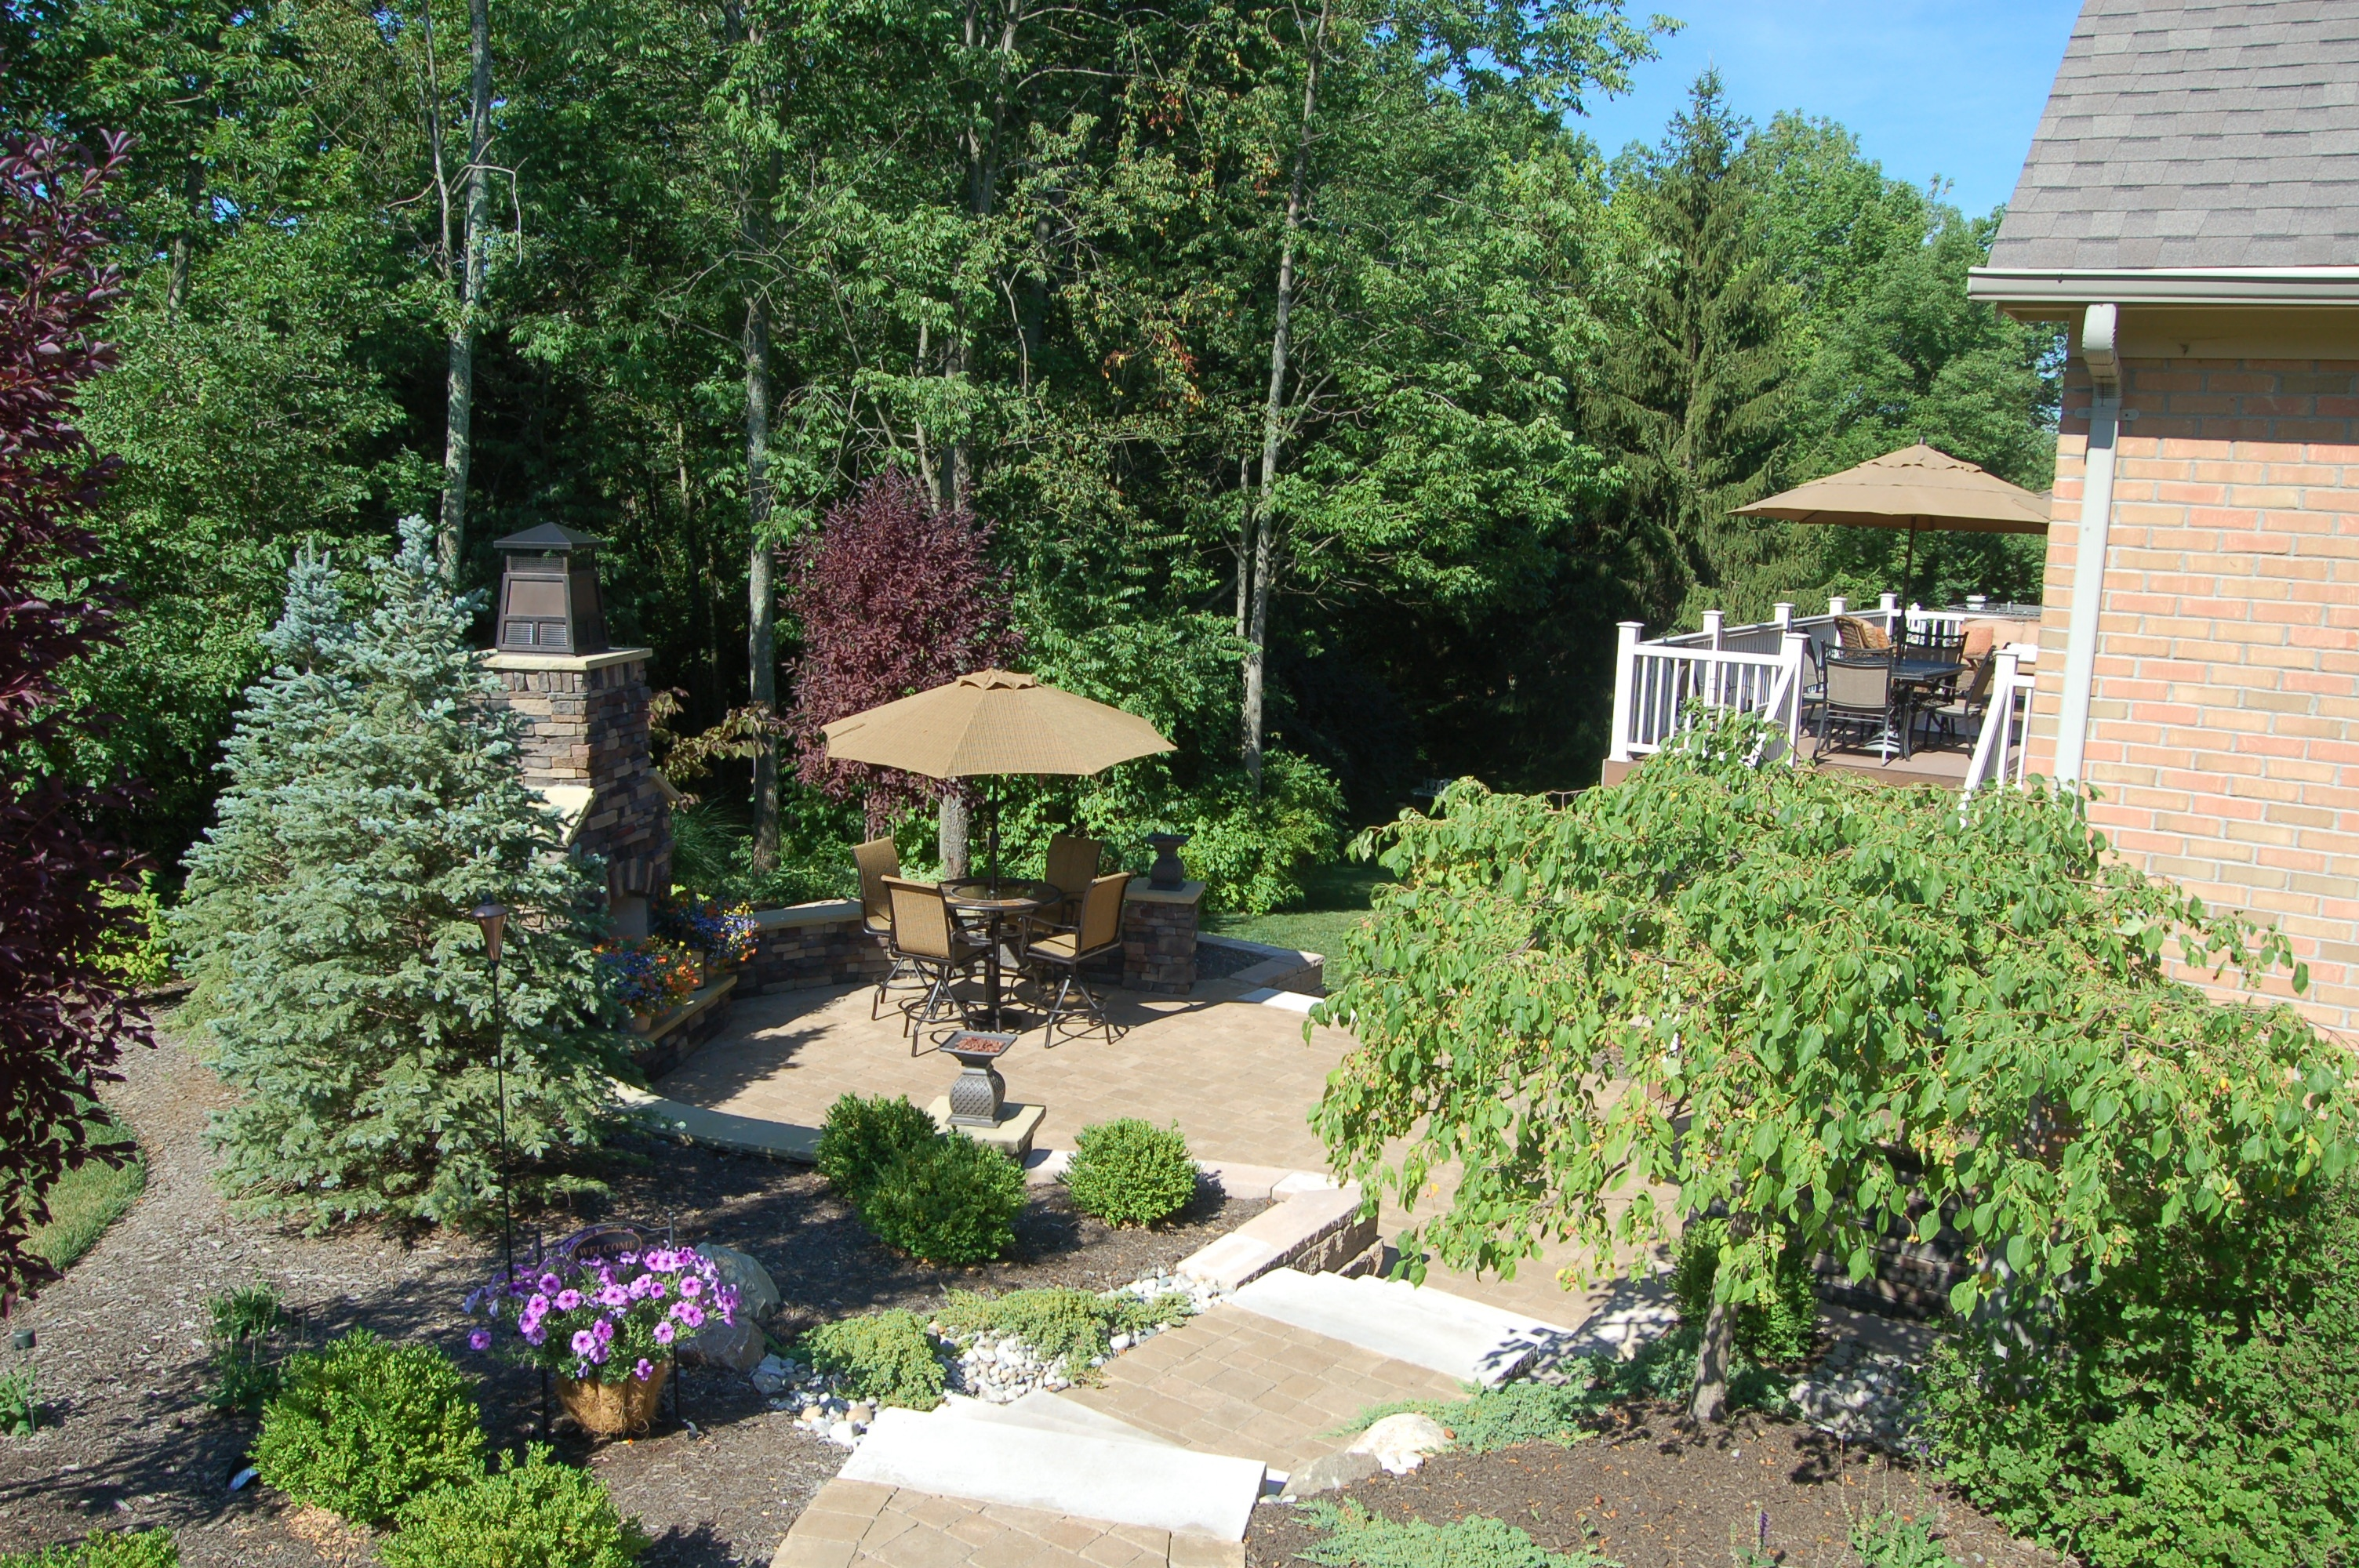 Plantings and flower beds archives tinkerturf for Elegant landscaping